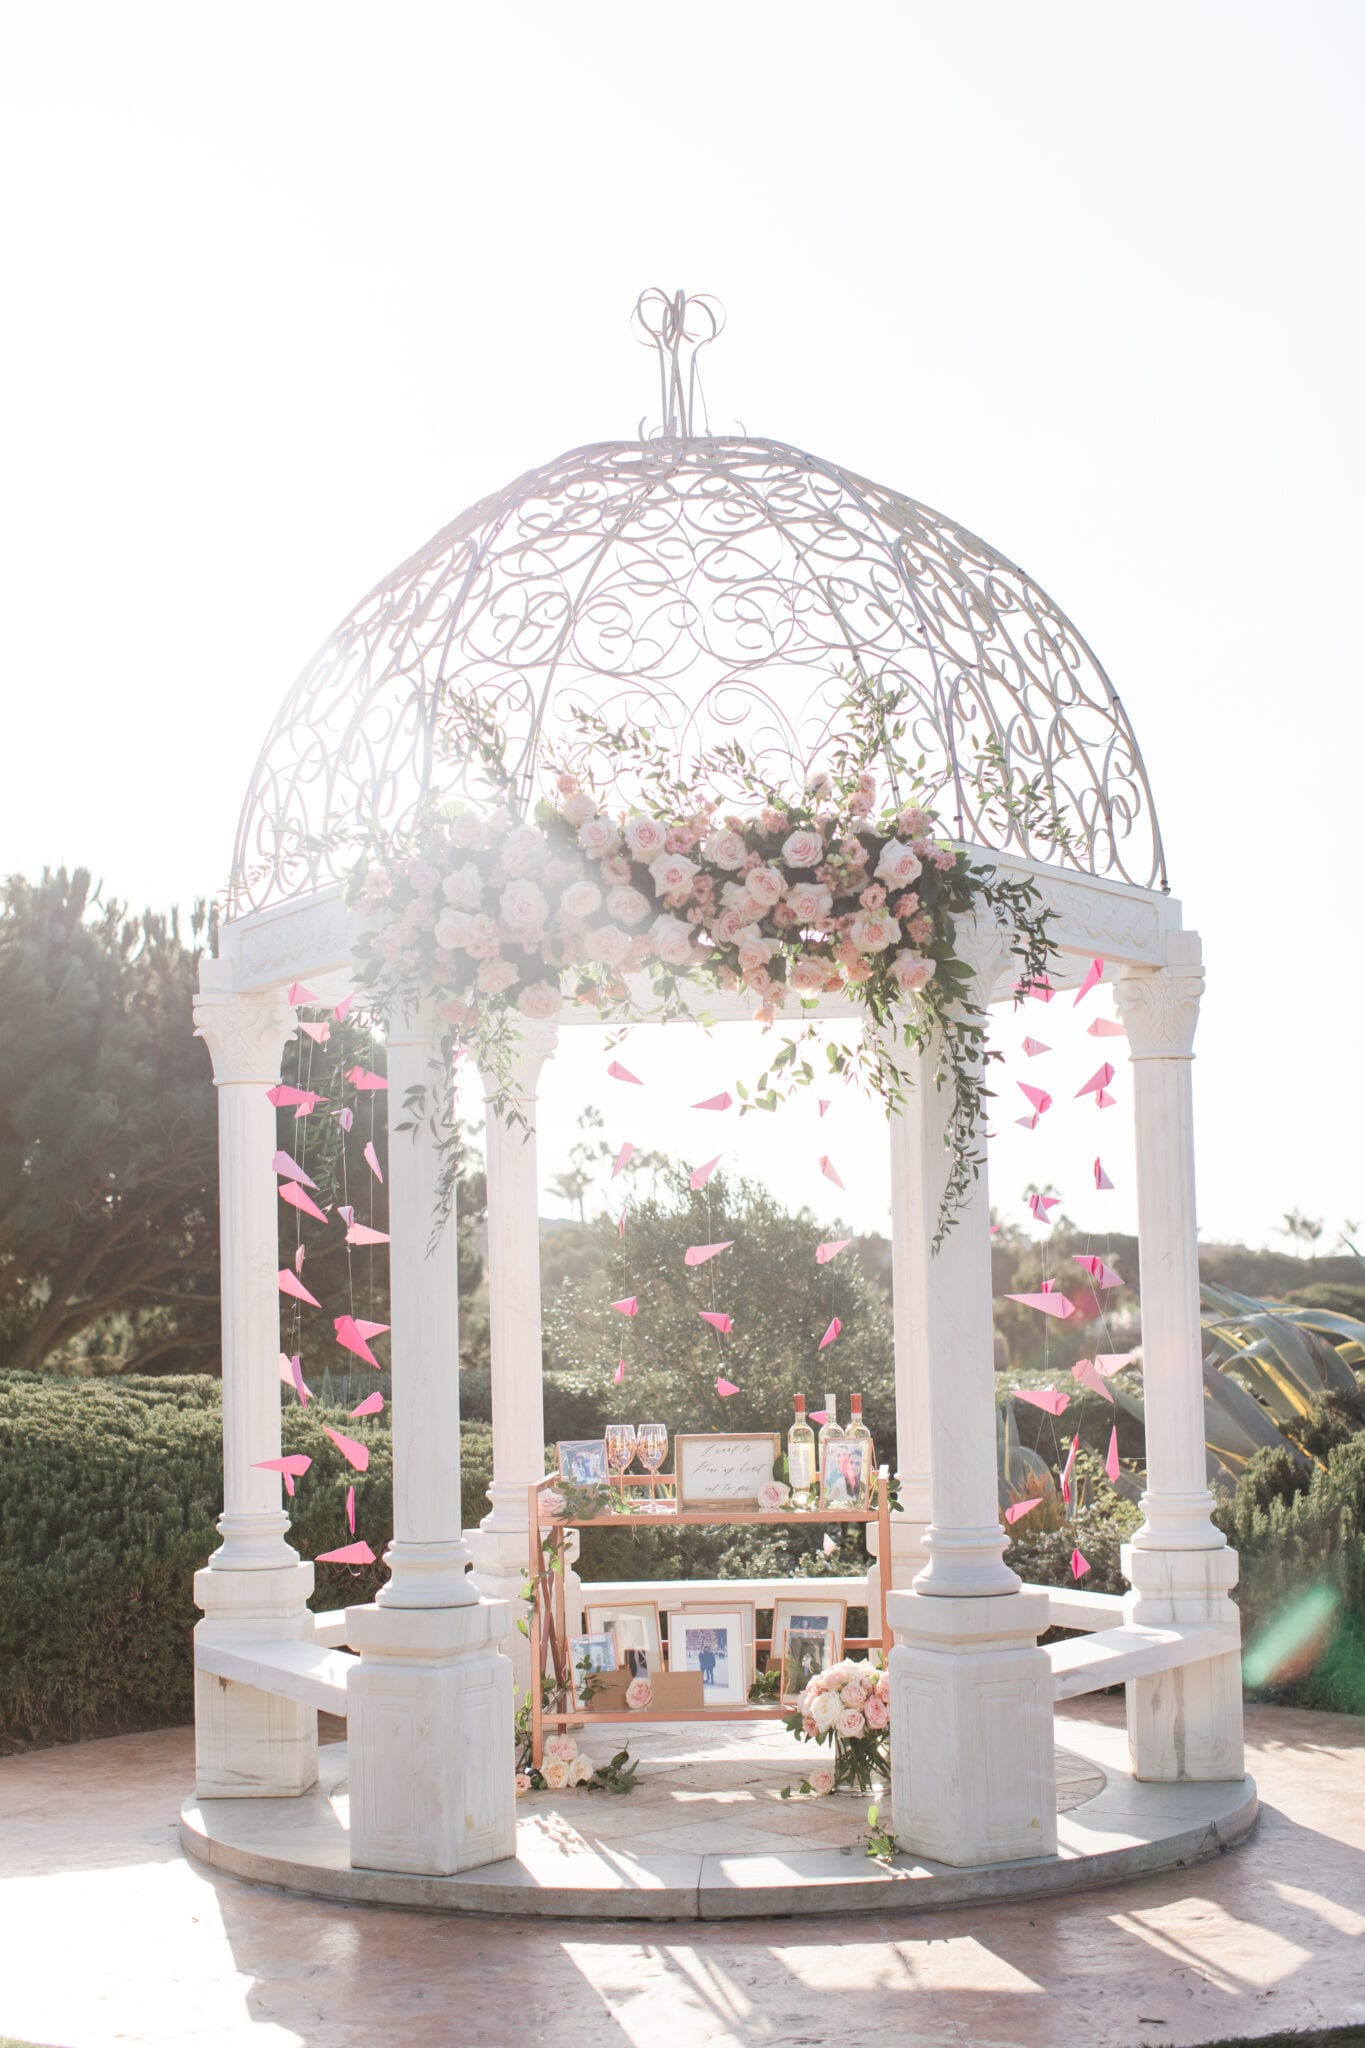 gazebo decorated in pink flowers